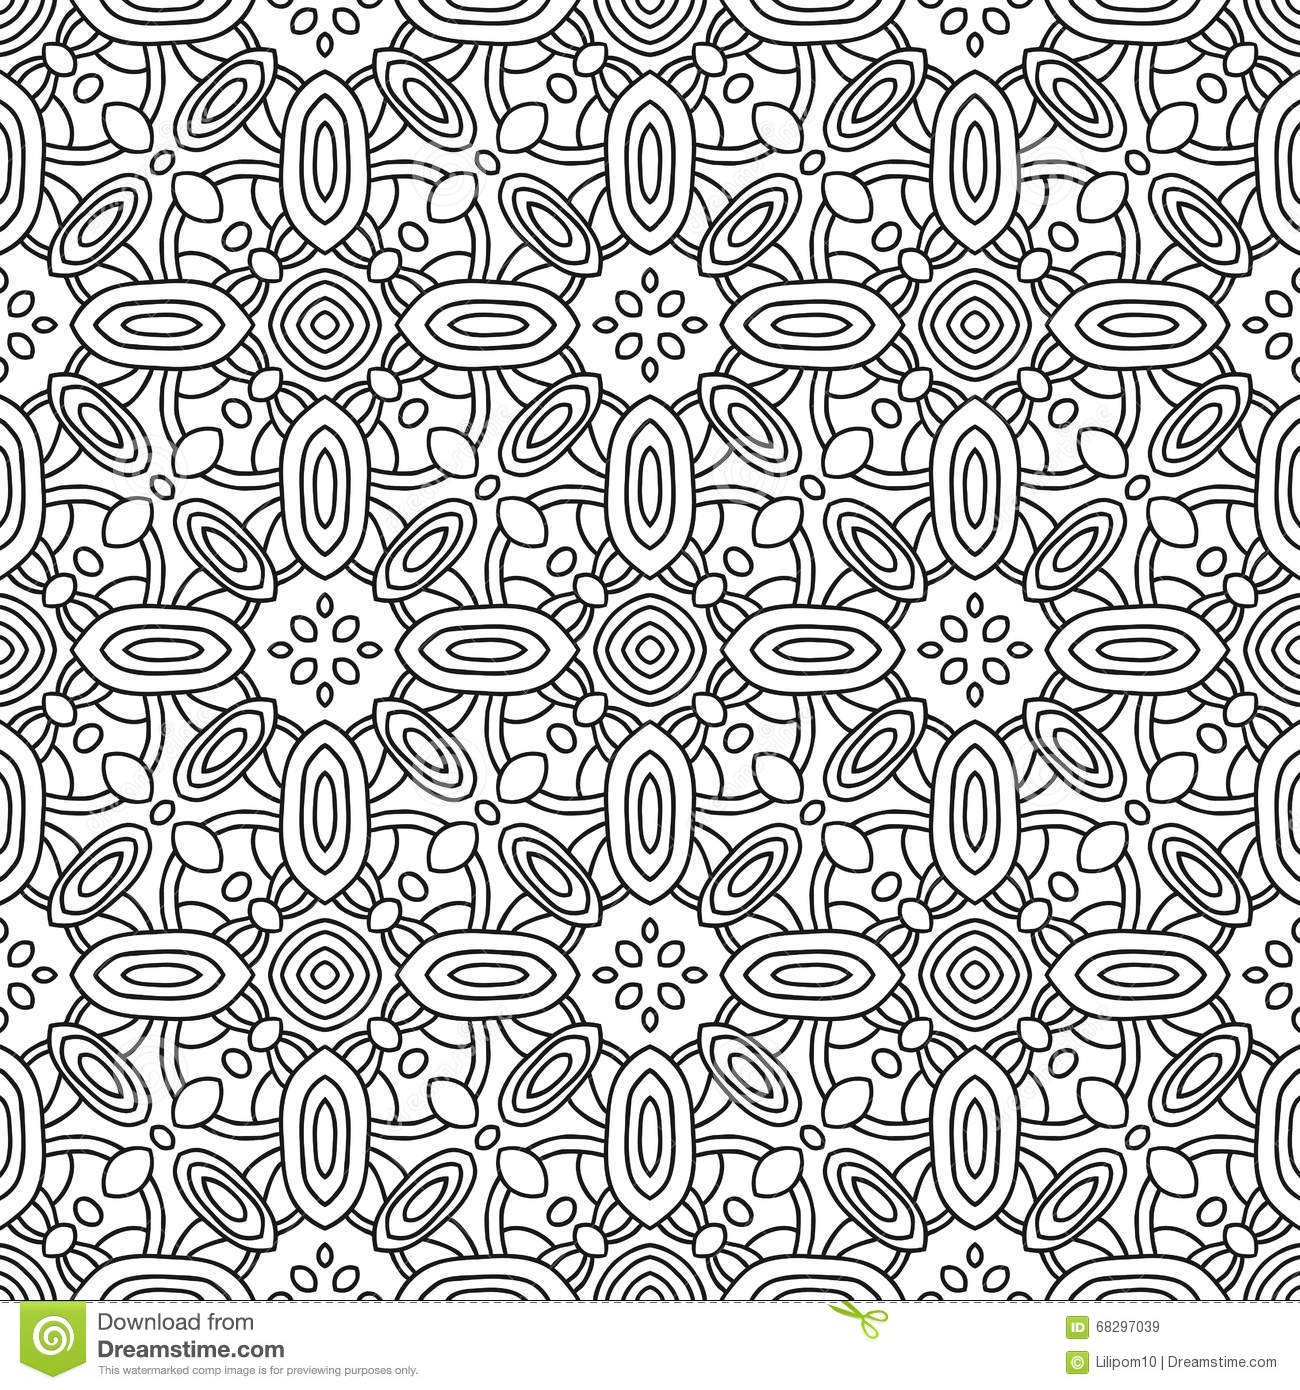 Seamless Black And White Decorative Pattern For Coloring Book Page ...